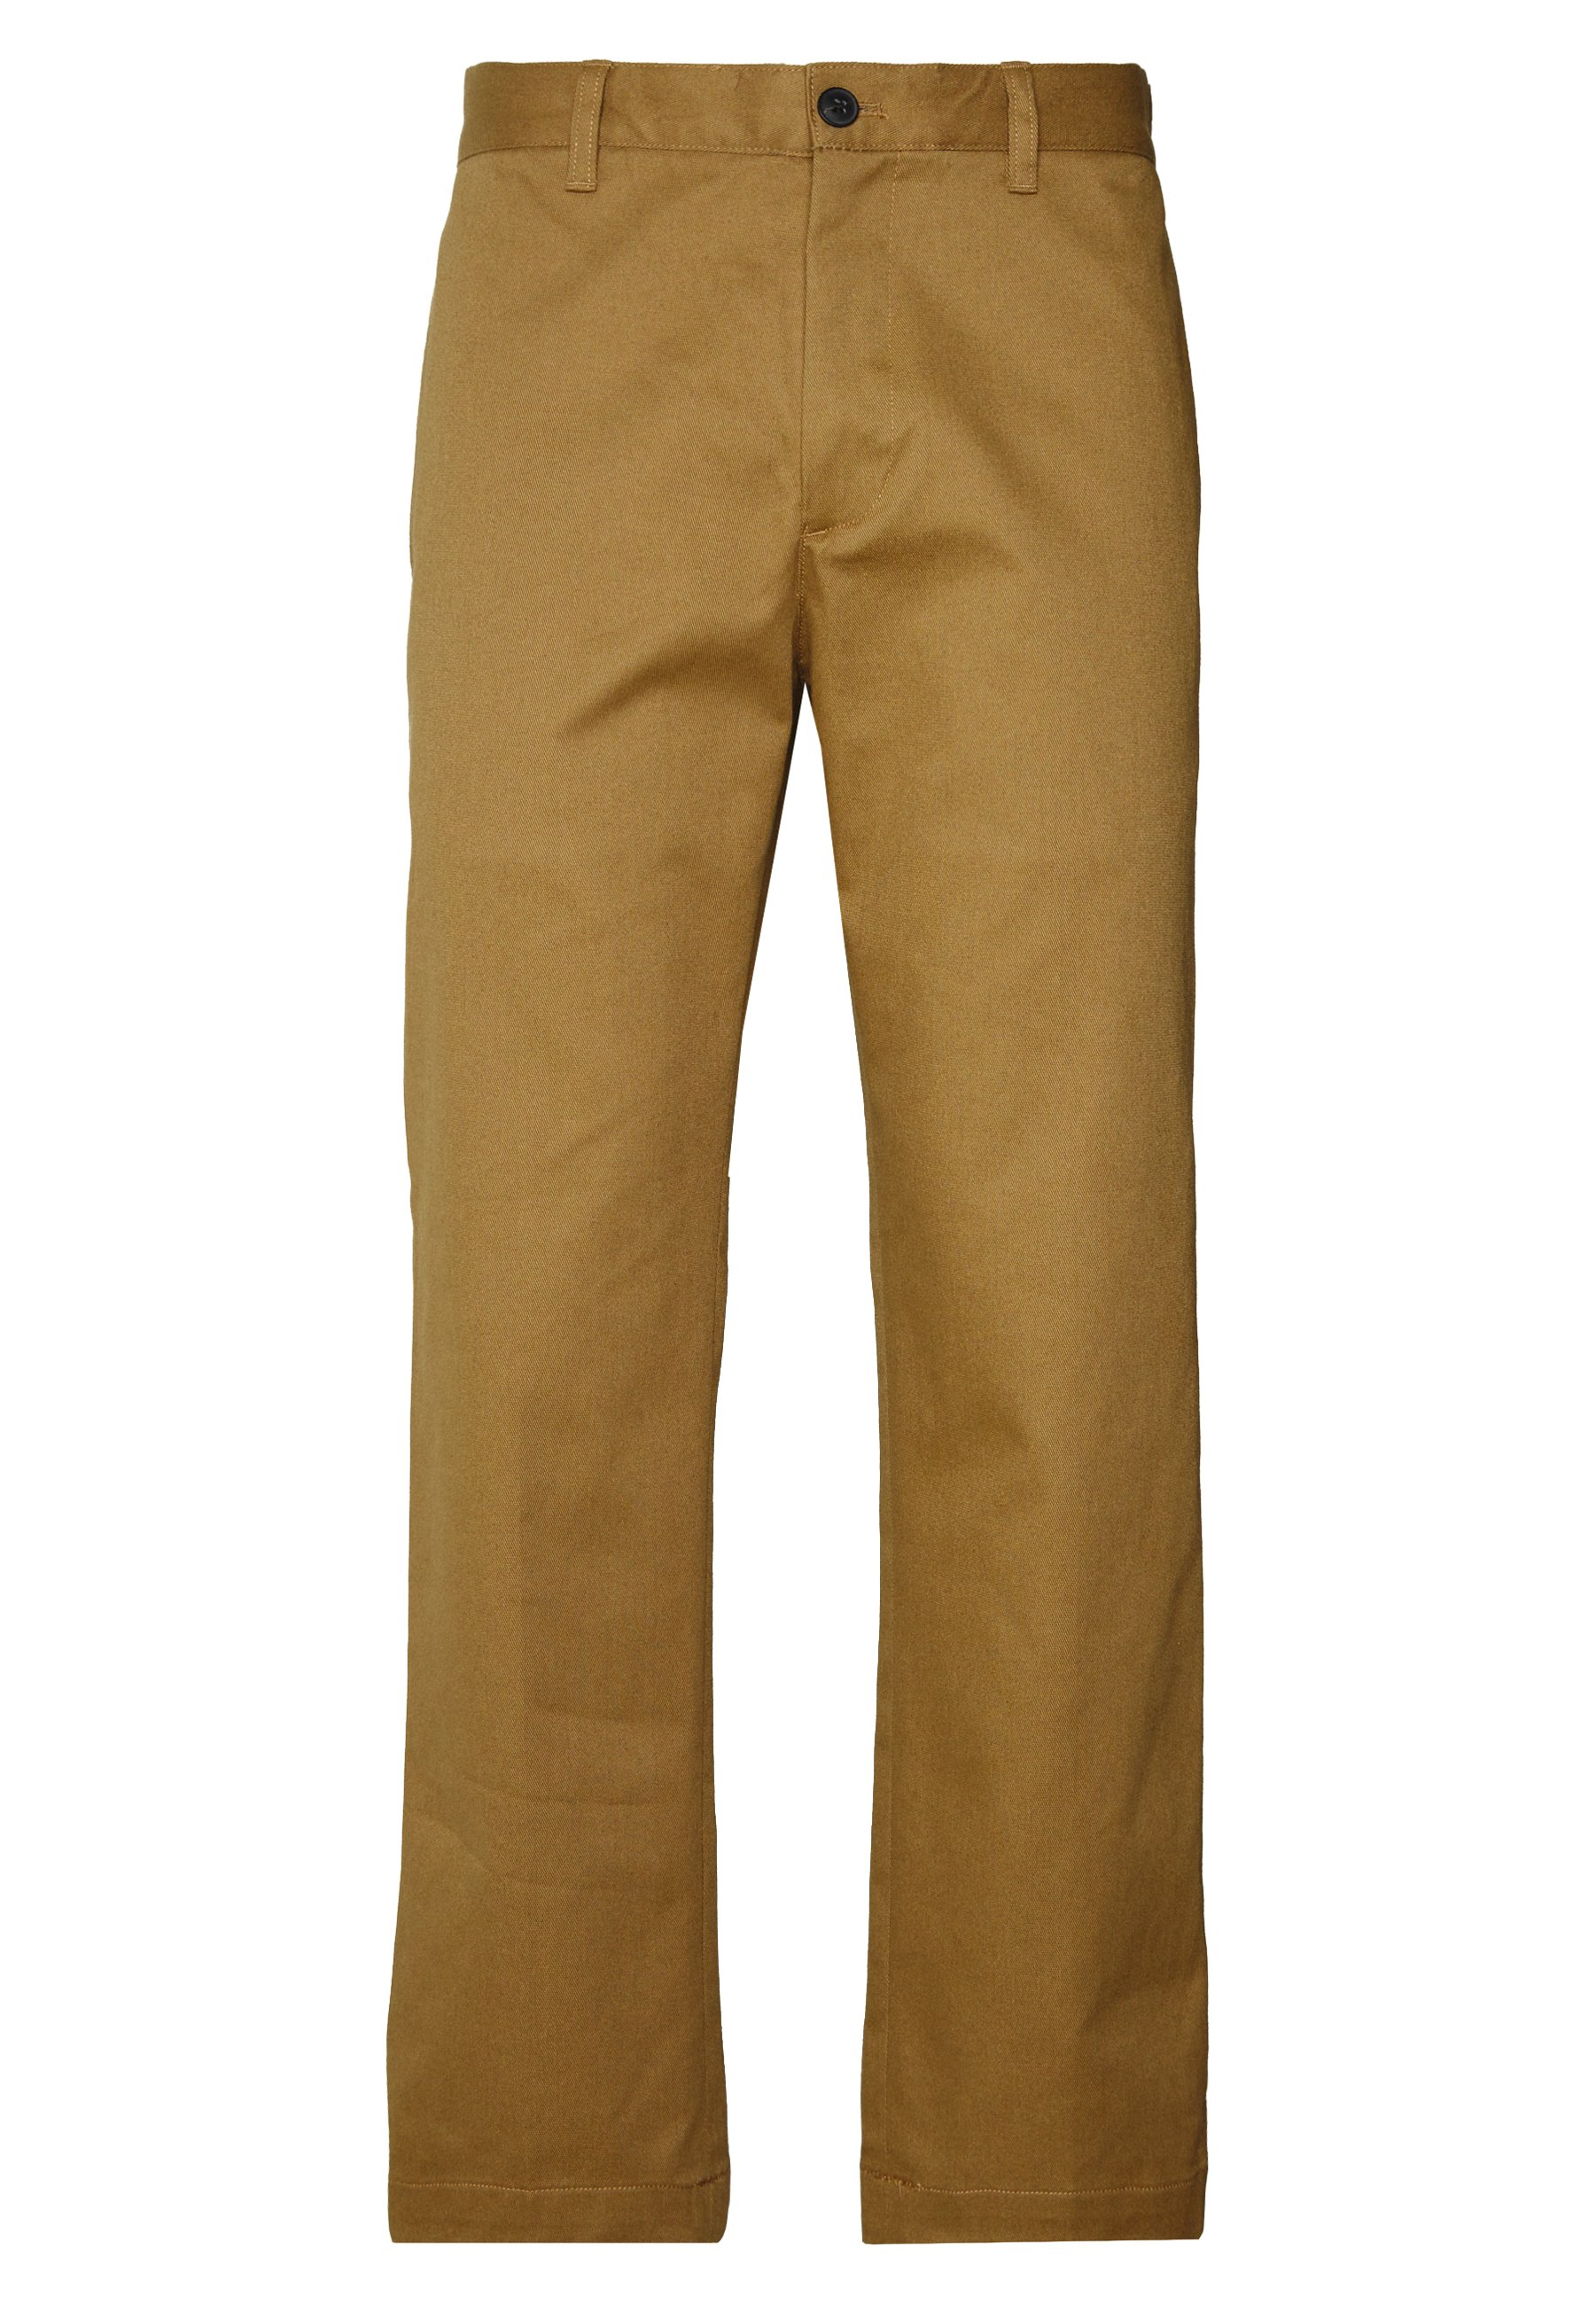 Club Monaco Cropped Pant - Chinos Mocha